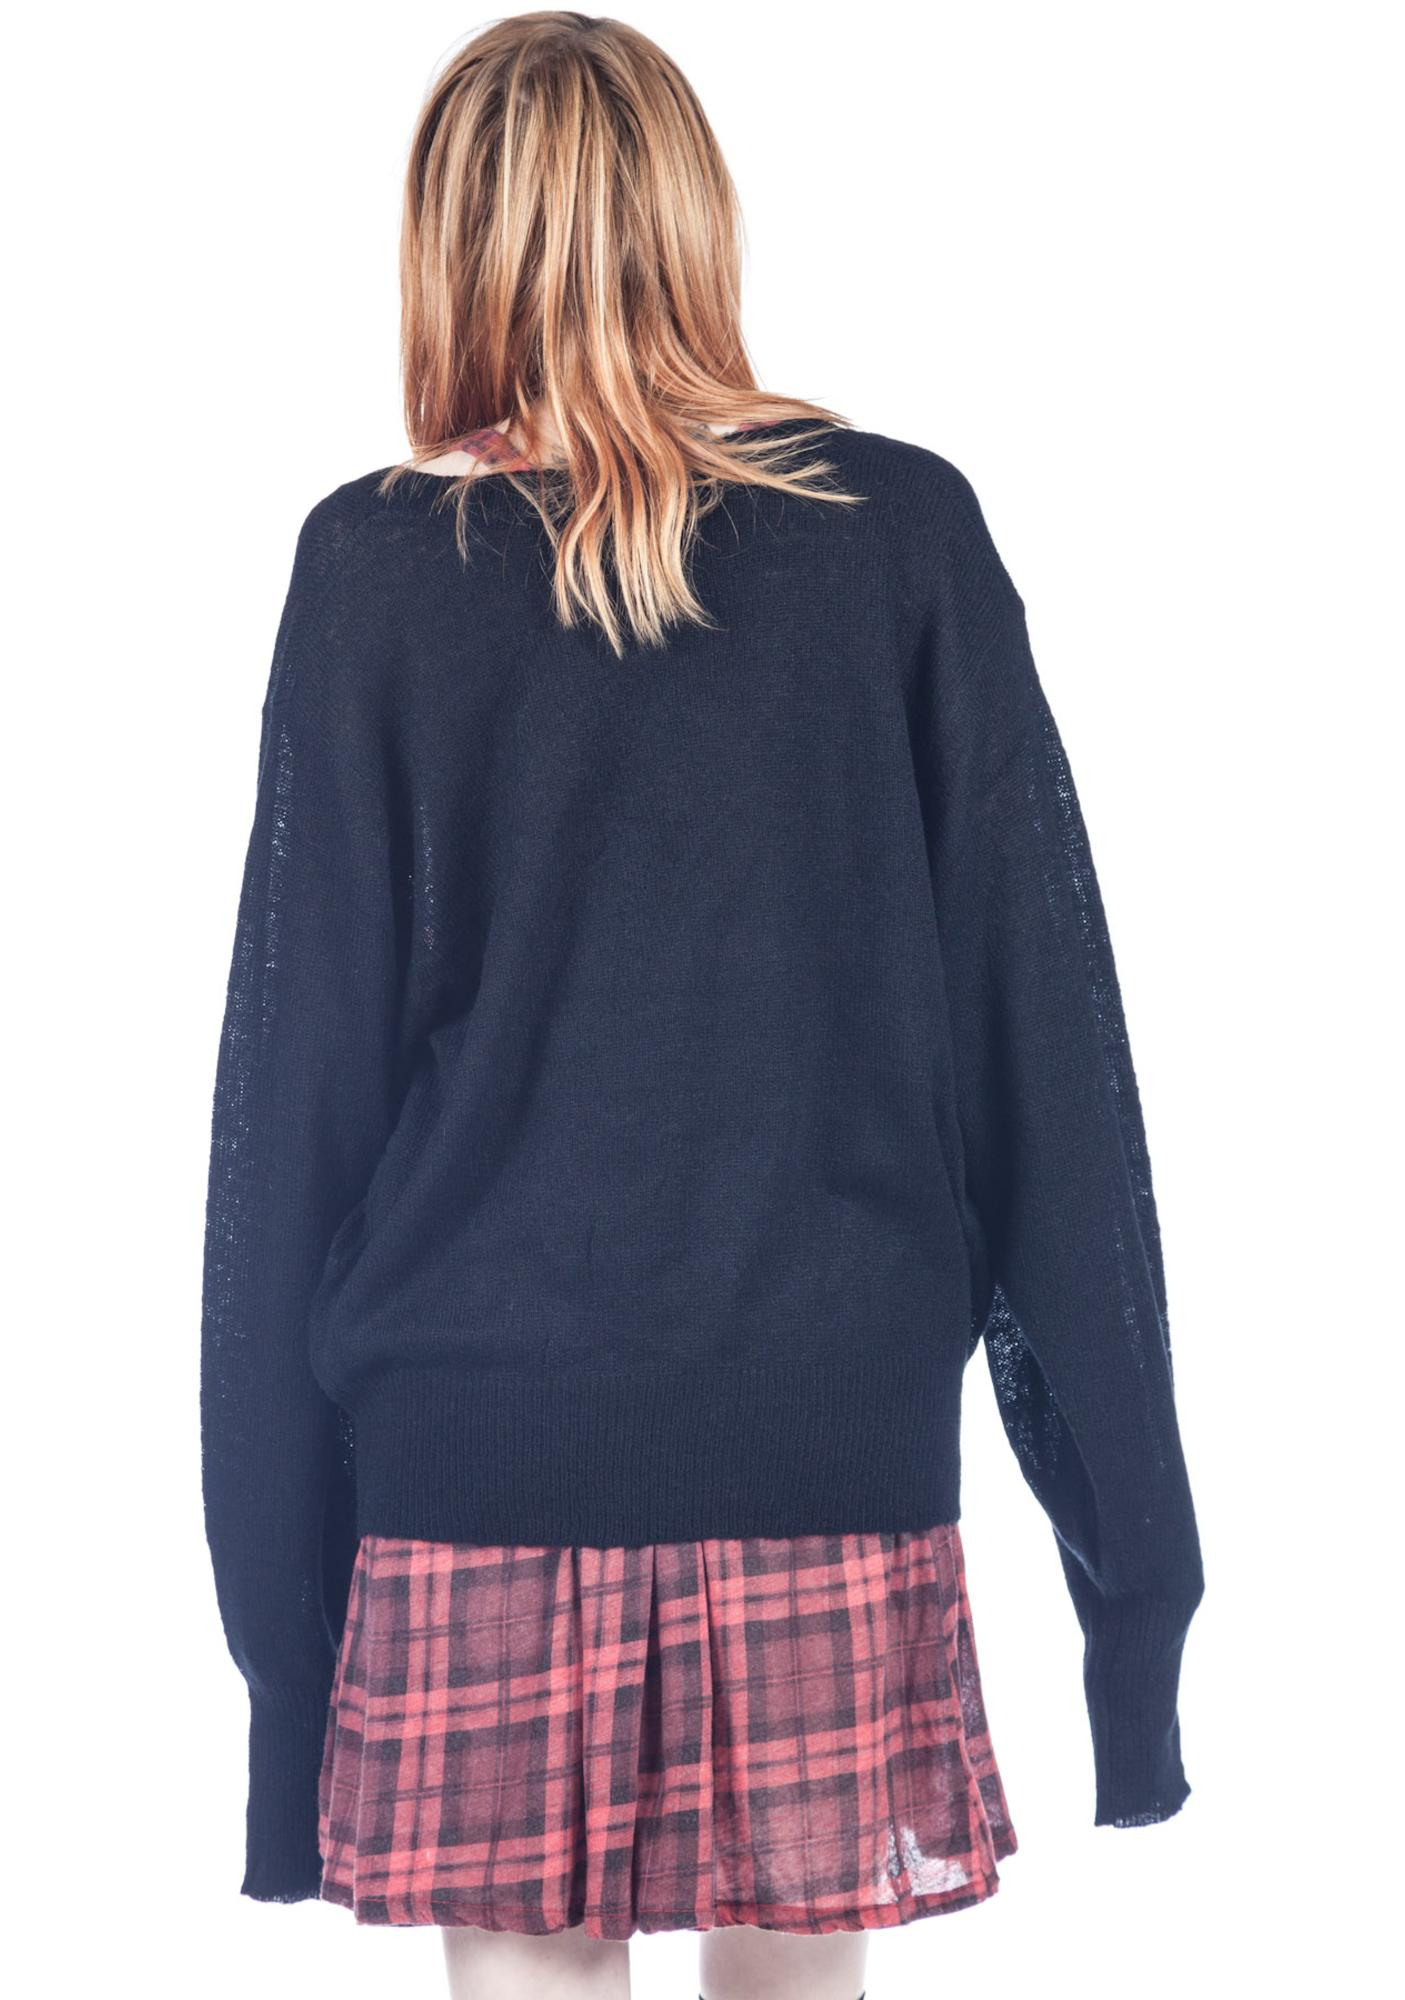 Wildfox Couture Mutiny School Girl V-neck Sweater